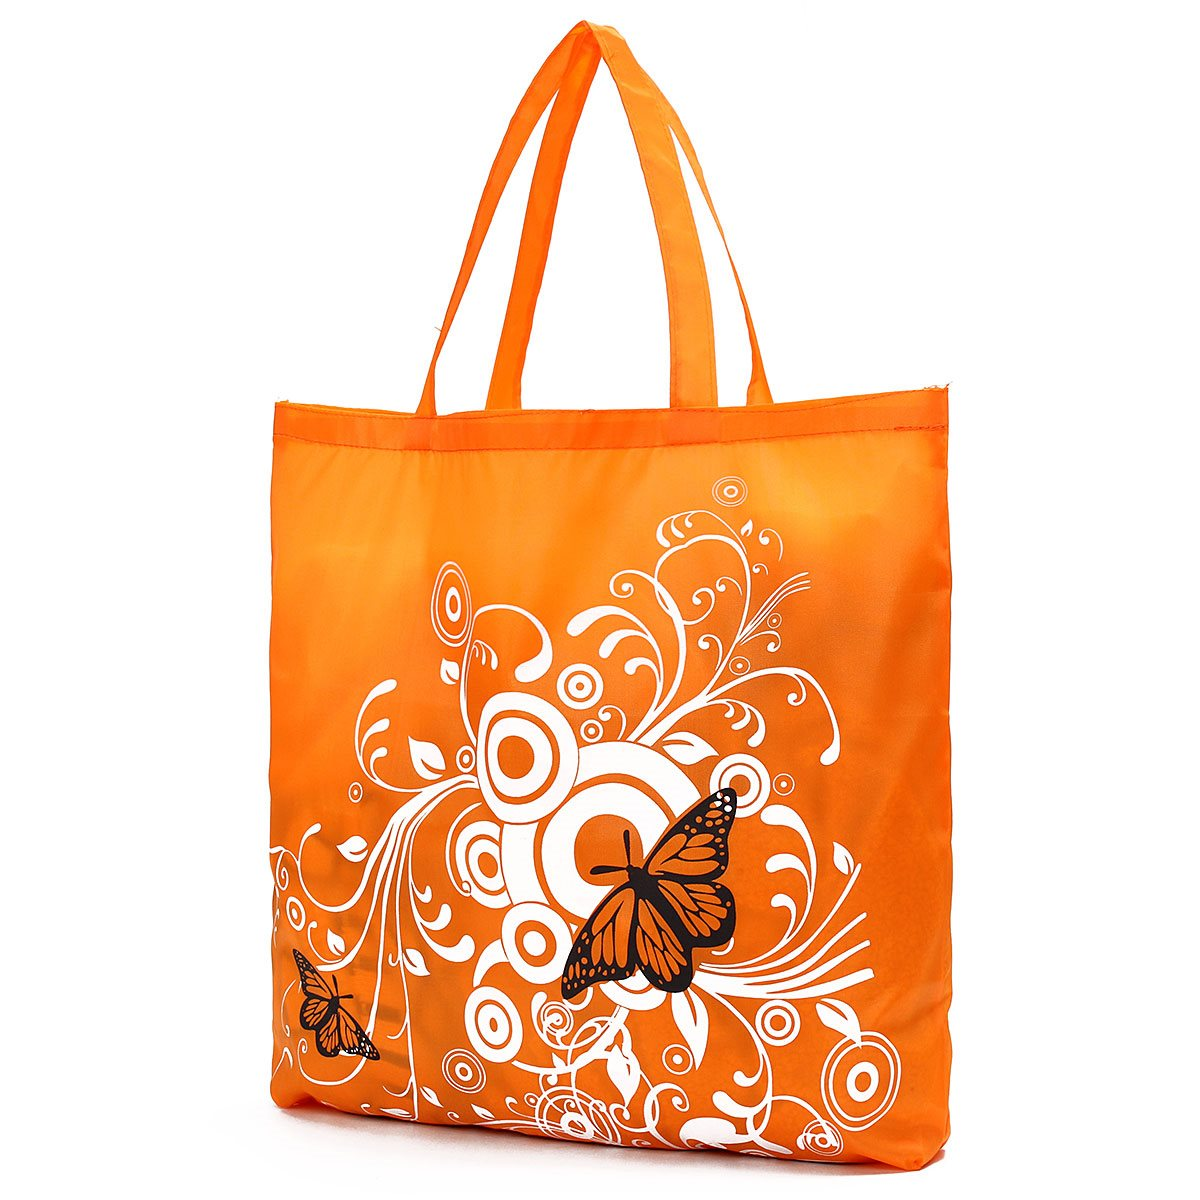 1 PCS Eco Storage Handbags Flower Butterfly Oxford Cloth Foldable Shopping Bags Folding Reusable Organizers Tote Bag 6 Colors(China (Mainland))